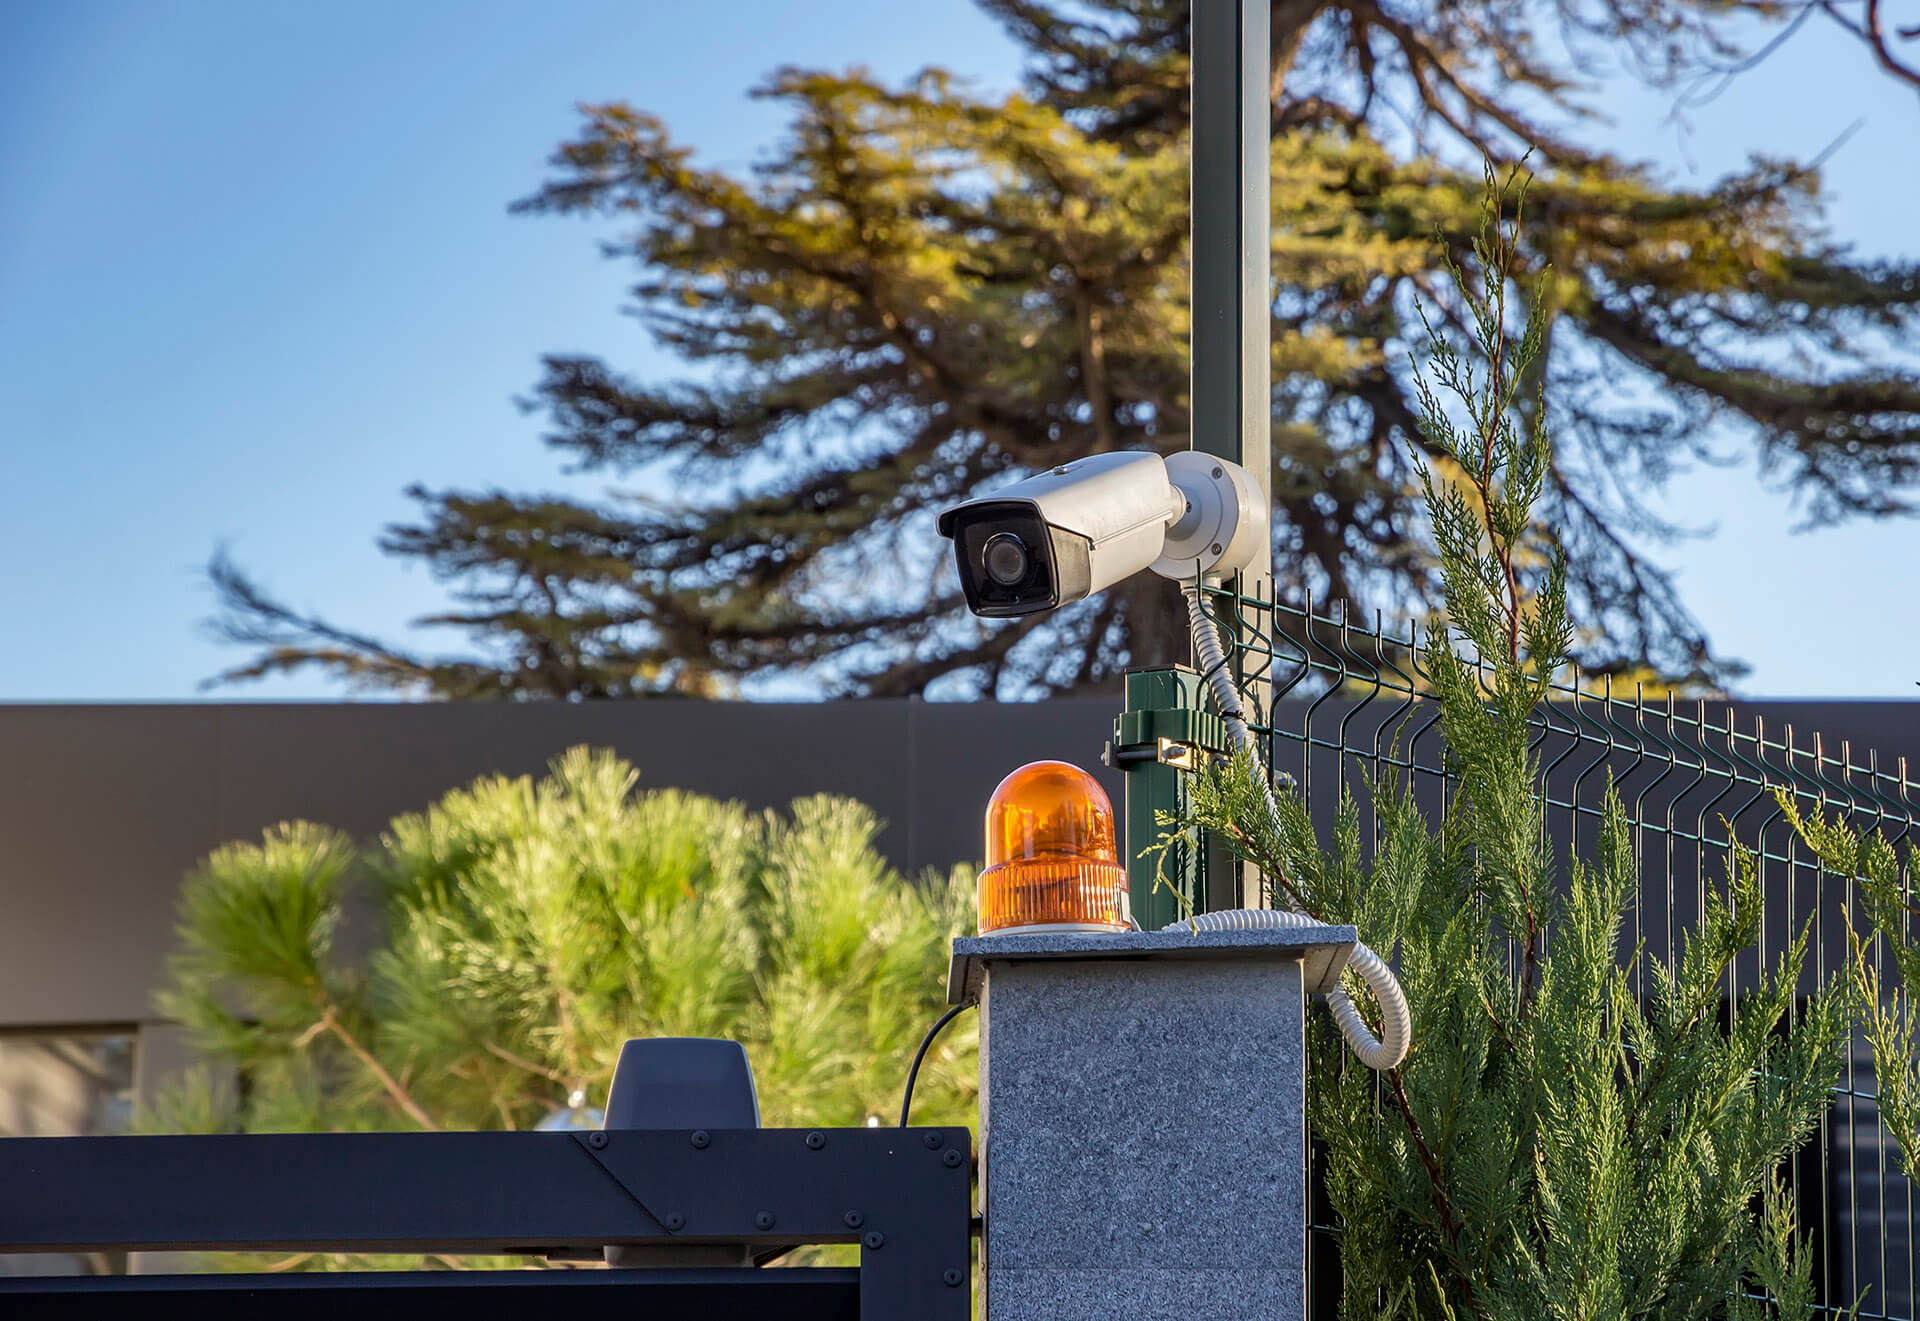 Security Equipment Camera Outdoors